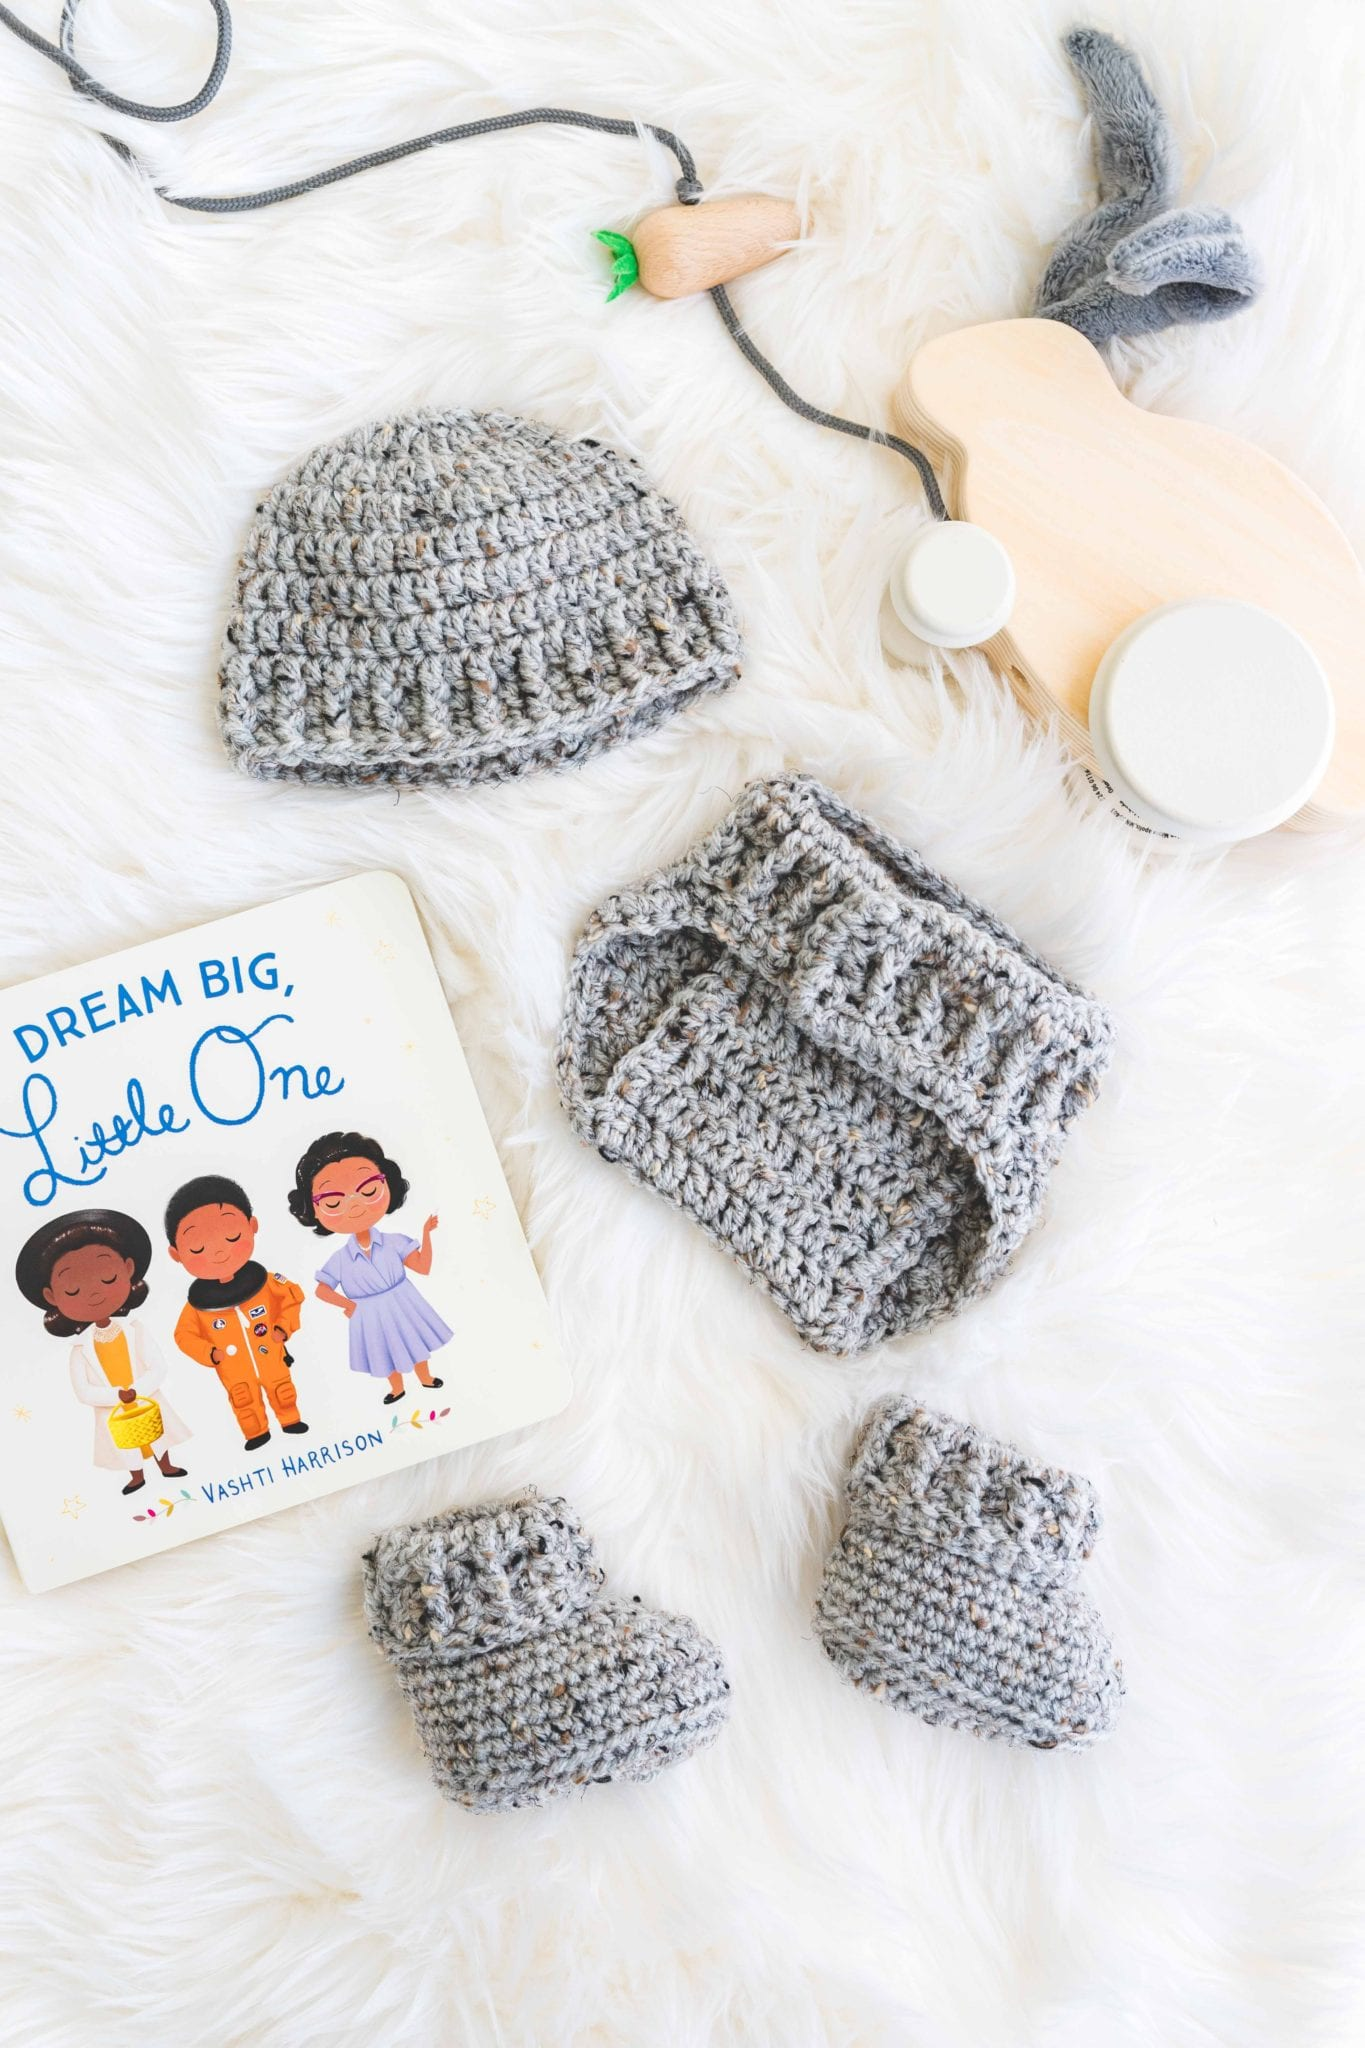 Crochet baby hat, baby booties, and diaper cover to make the Parker baby set of free crochet patterns.